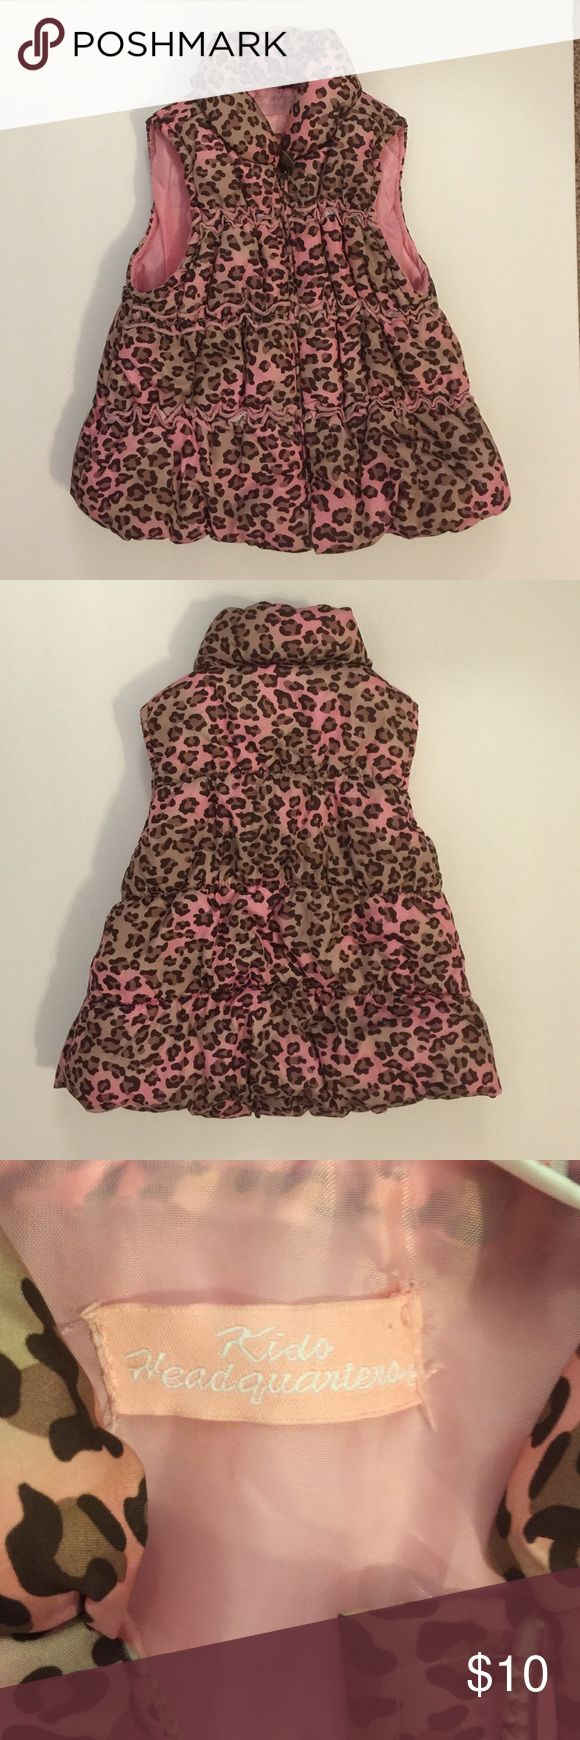 Kids Headquarters Vest Pink , tan and brown animal print zip up vest . Soooo adorable 🌺🌺 18 months size Kids Headquarters Jackets & Coats Vests